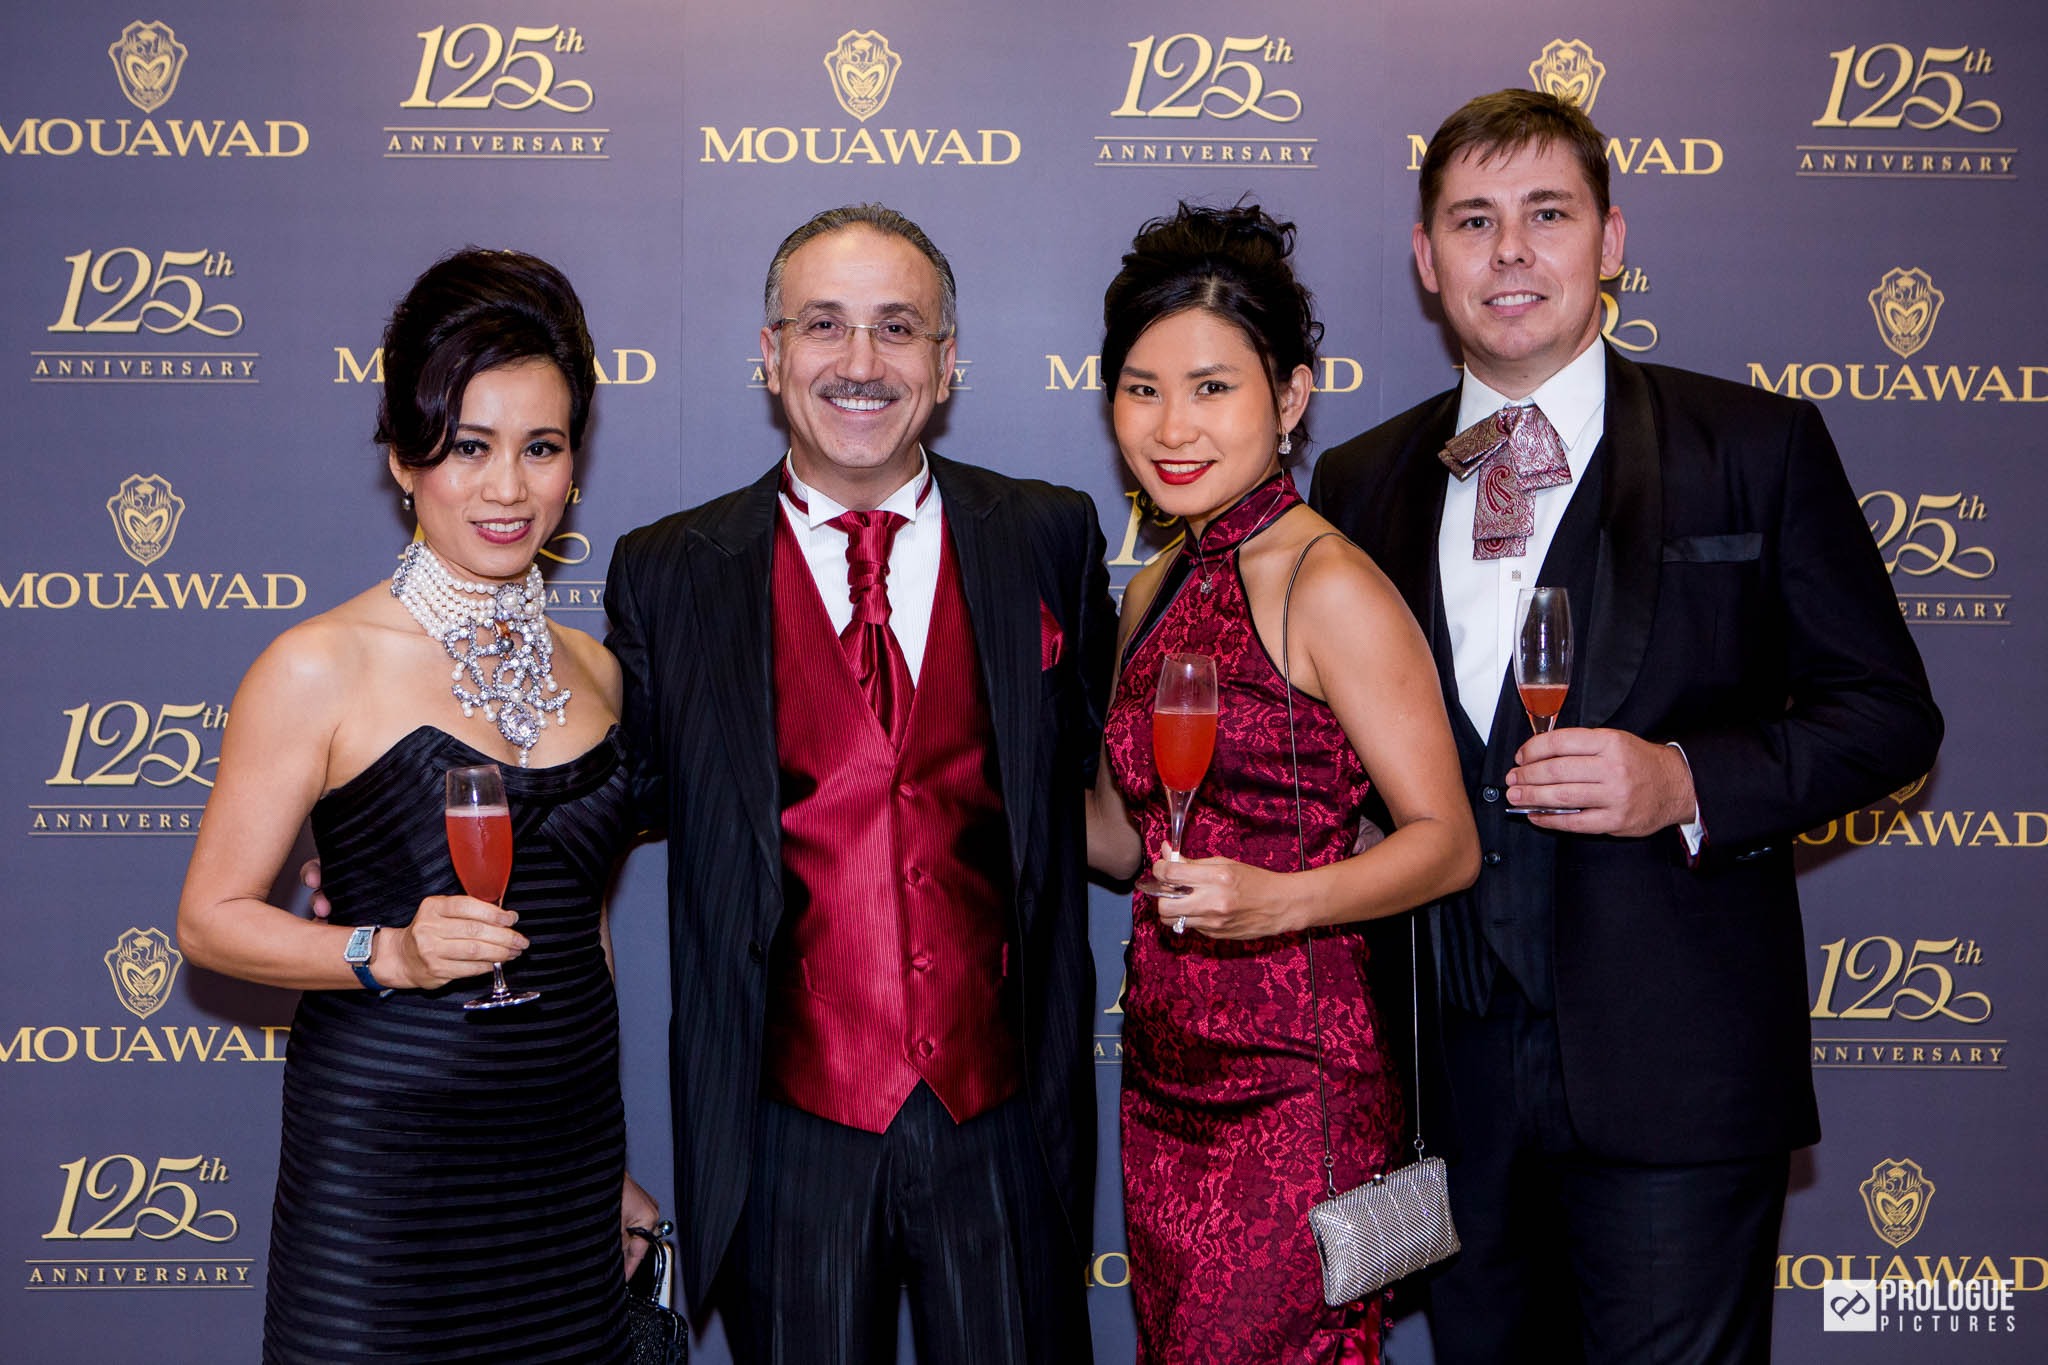 mouawad-125th-anniversary-event-photography-singapore-prologue-pictures-08